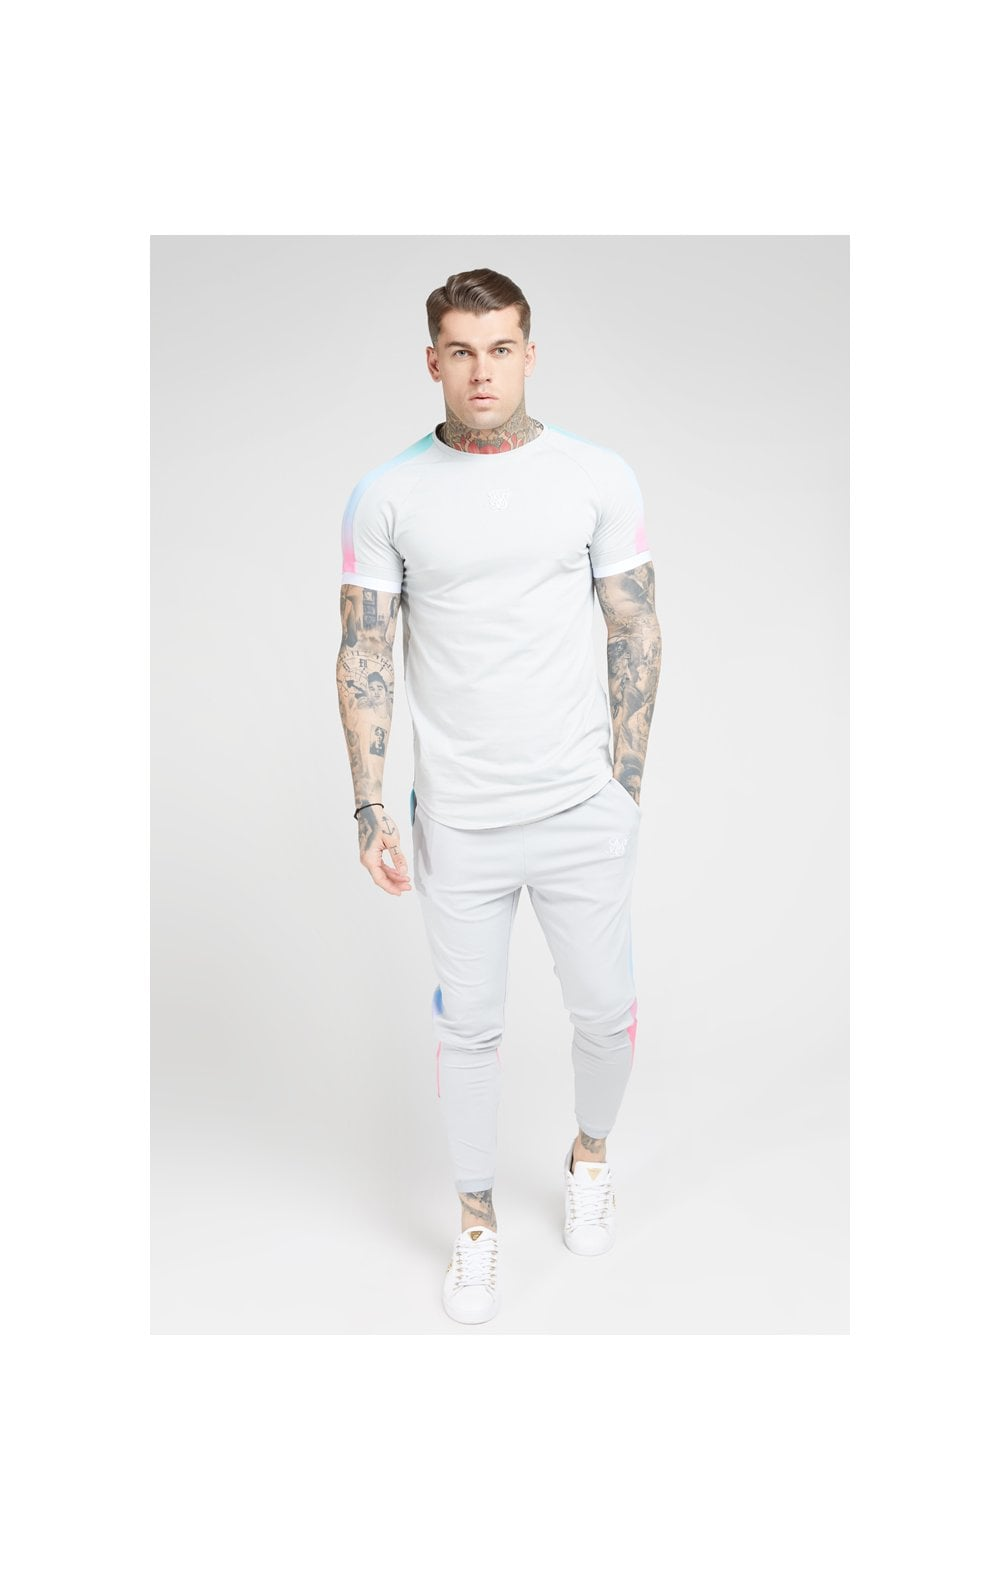 Load image into Gallery viewer, SikSilk S/S Inset Fade Tech Tee – Ice Grey & Tri Fade (2)